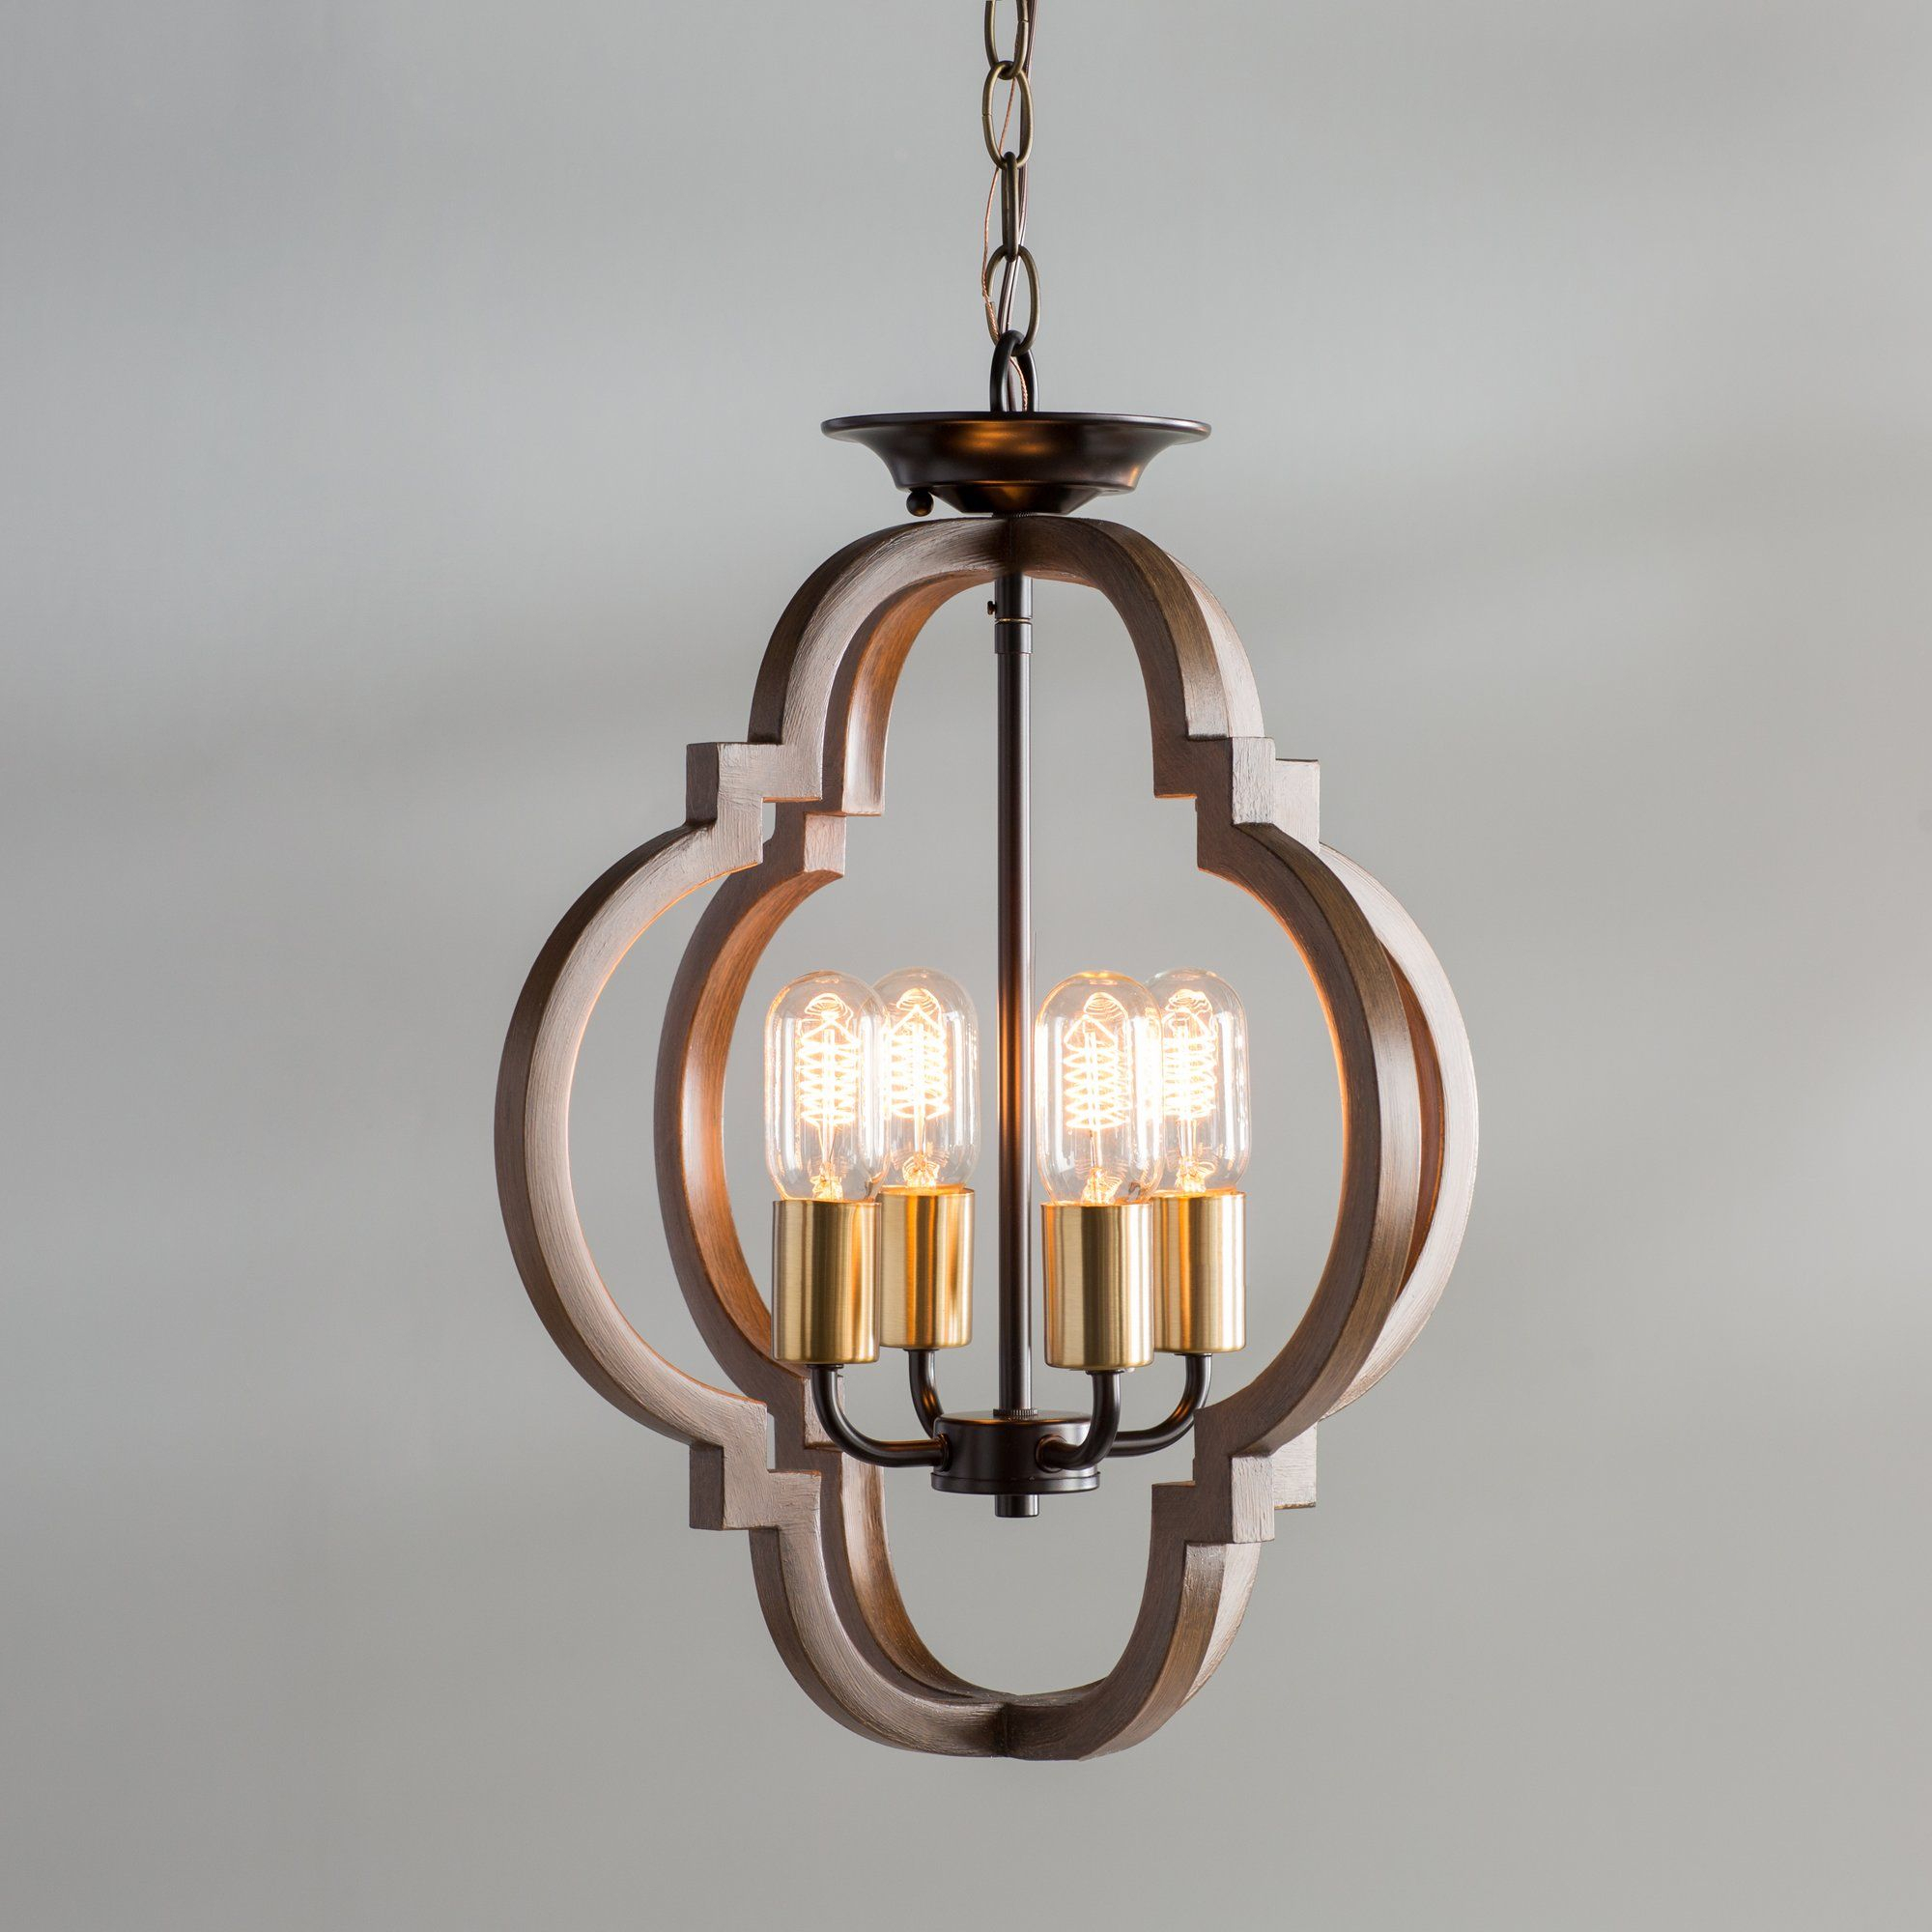 Kaycee 4 Light Geometric Pendant | For The Home | Foyer Pertaining To Kaycee 4 Light Geometric Chandeliers (View 8 of 30)